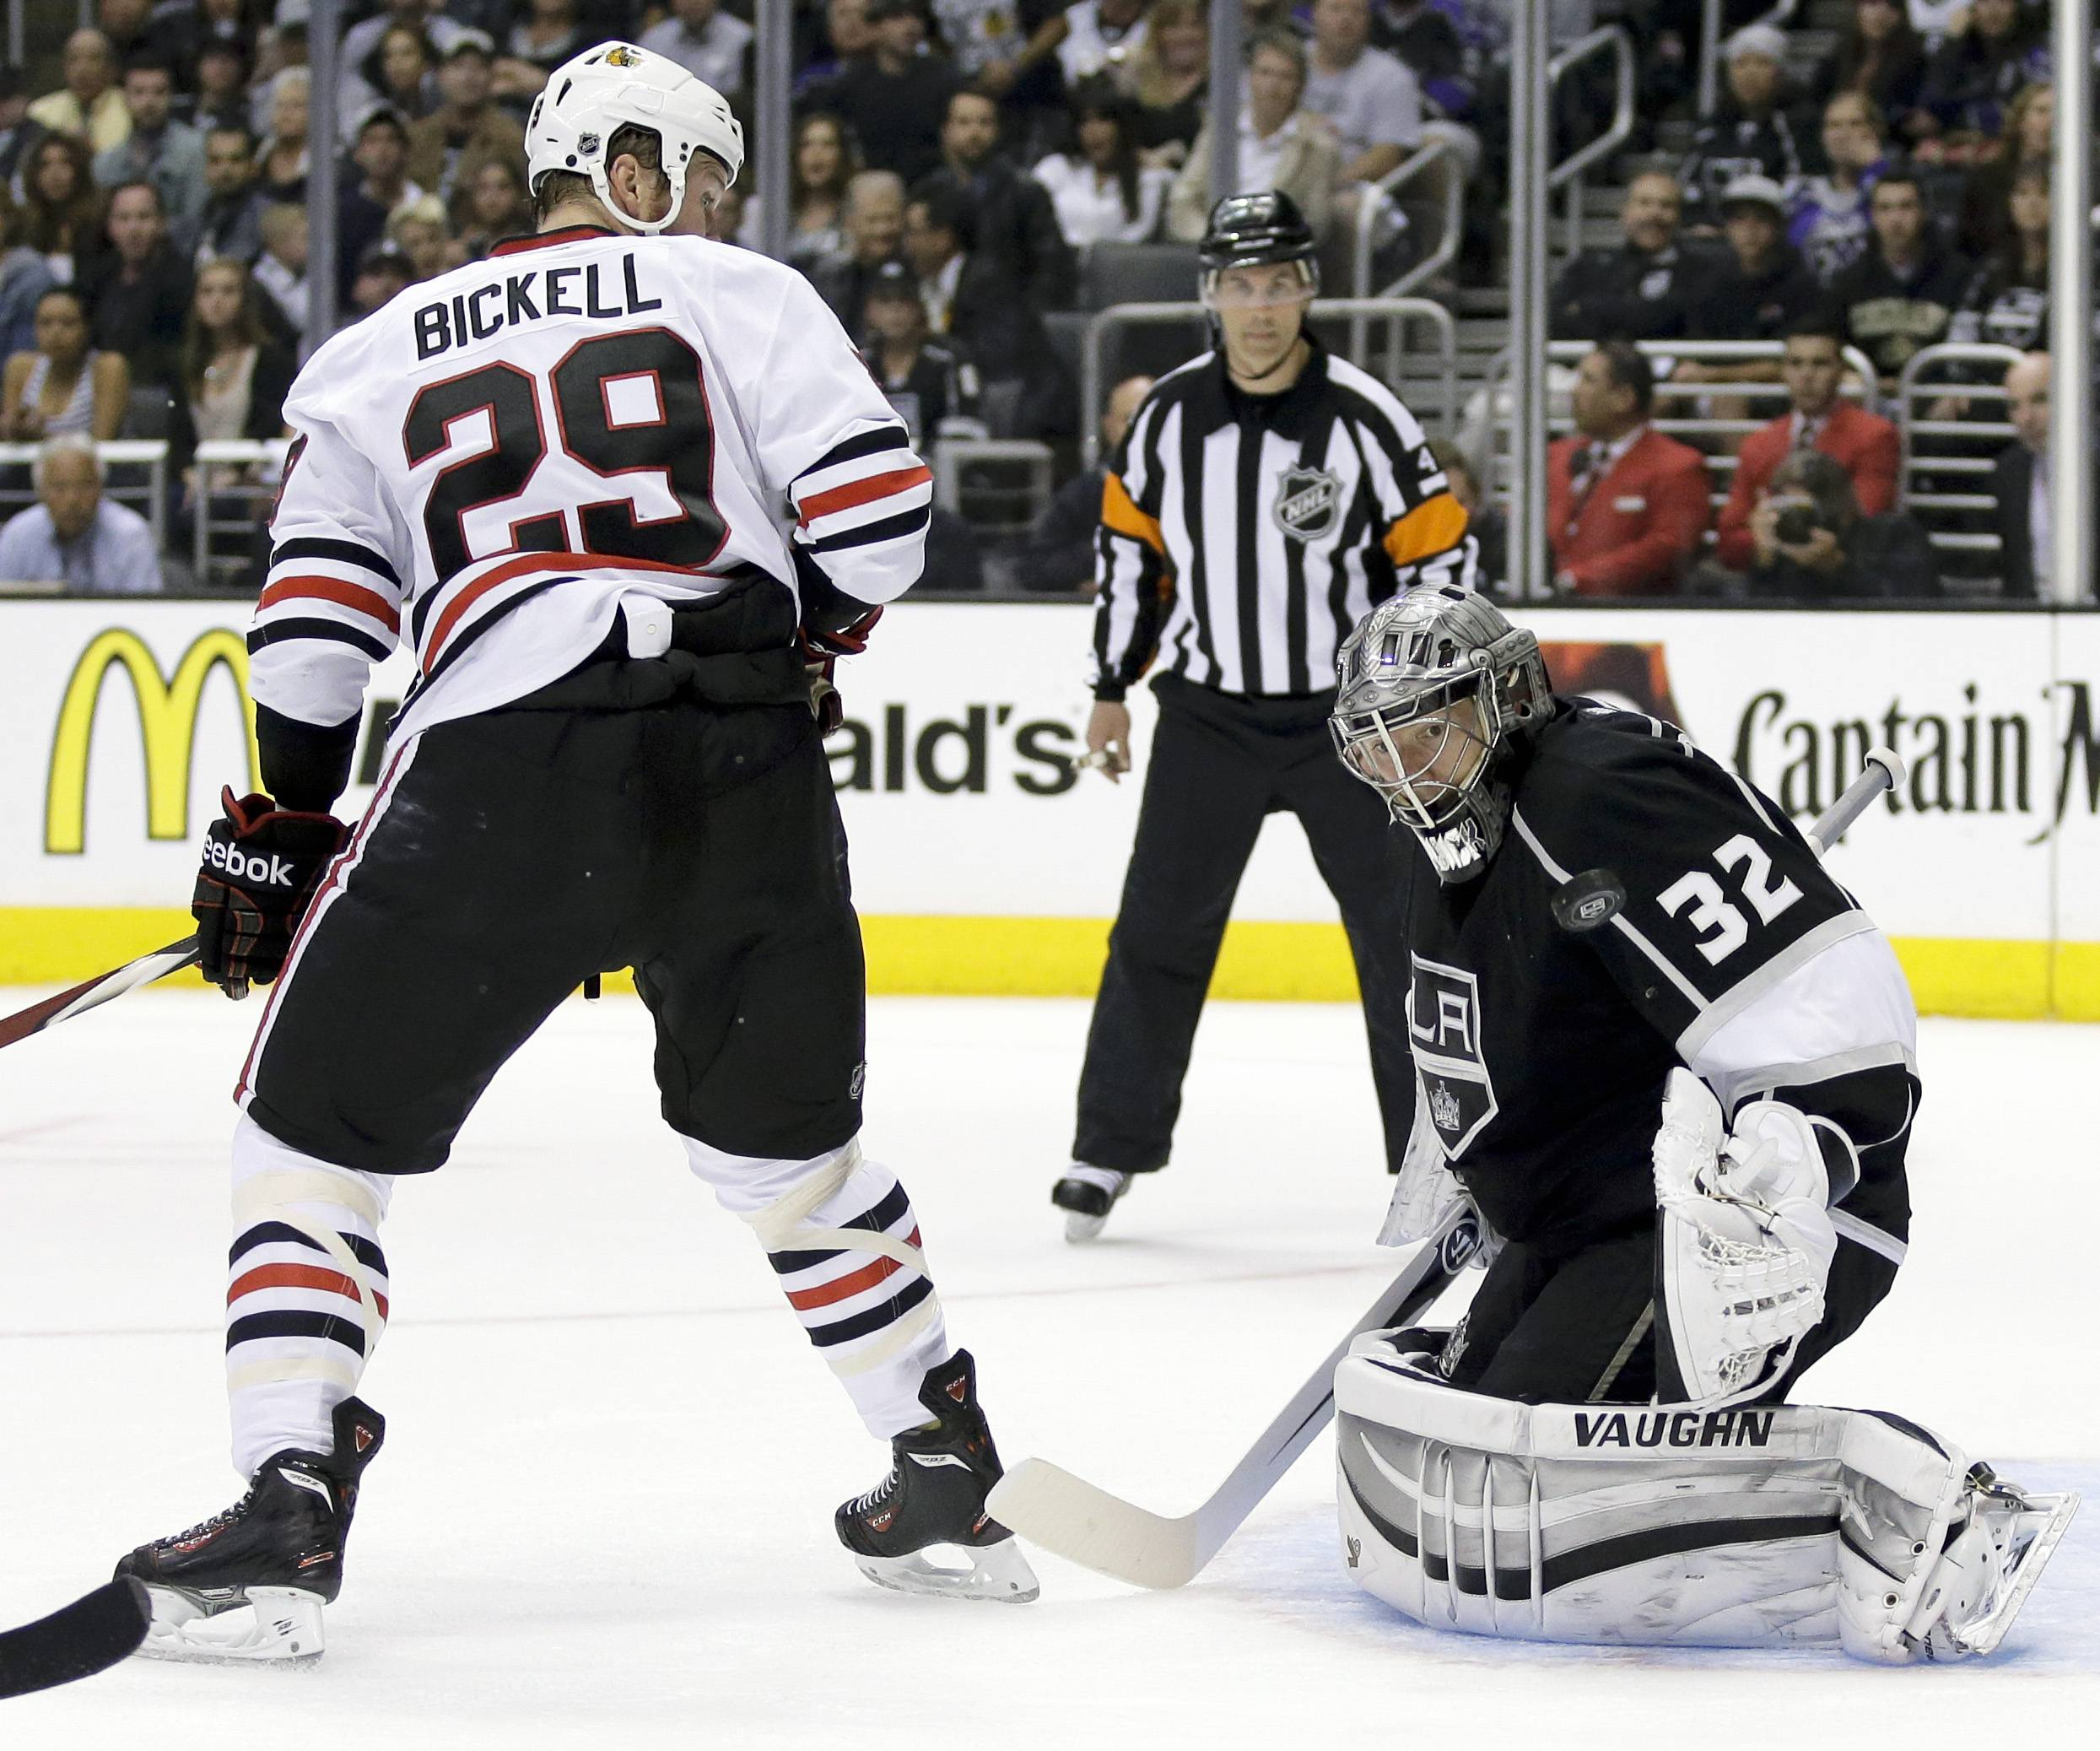 Los Angeles Kings goalie Jonathan Quick, right, blocks a shot as Chicago Blackhawks left wing Bryan Bickell stands near during the first period of Game 4 of the Western Conference finals of the NHL hockey Stanley Cup playoffs in Los Angeles, Monday, May 26, 2014.